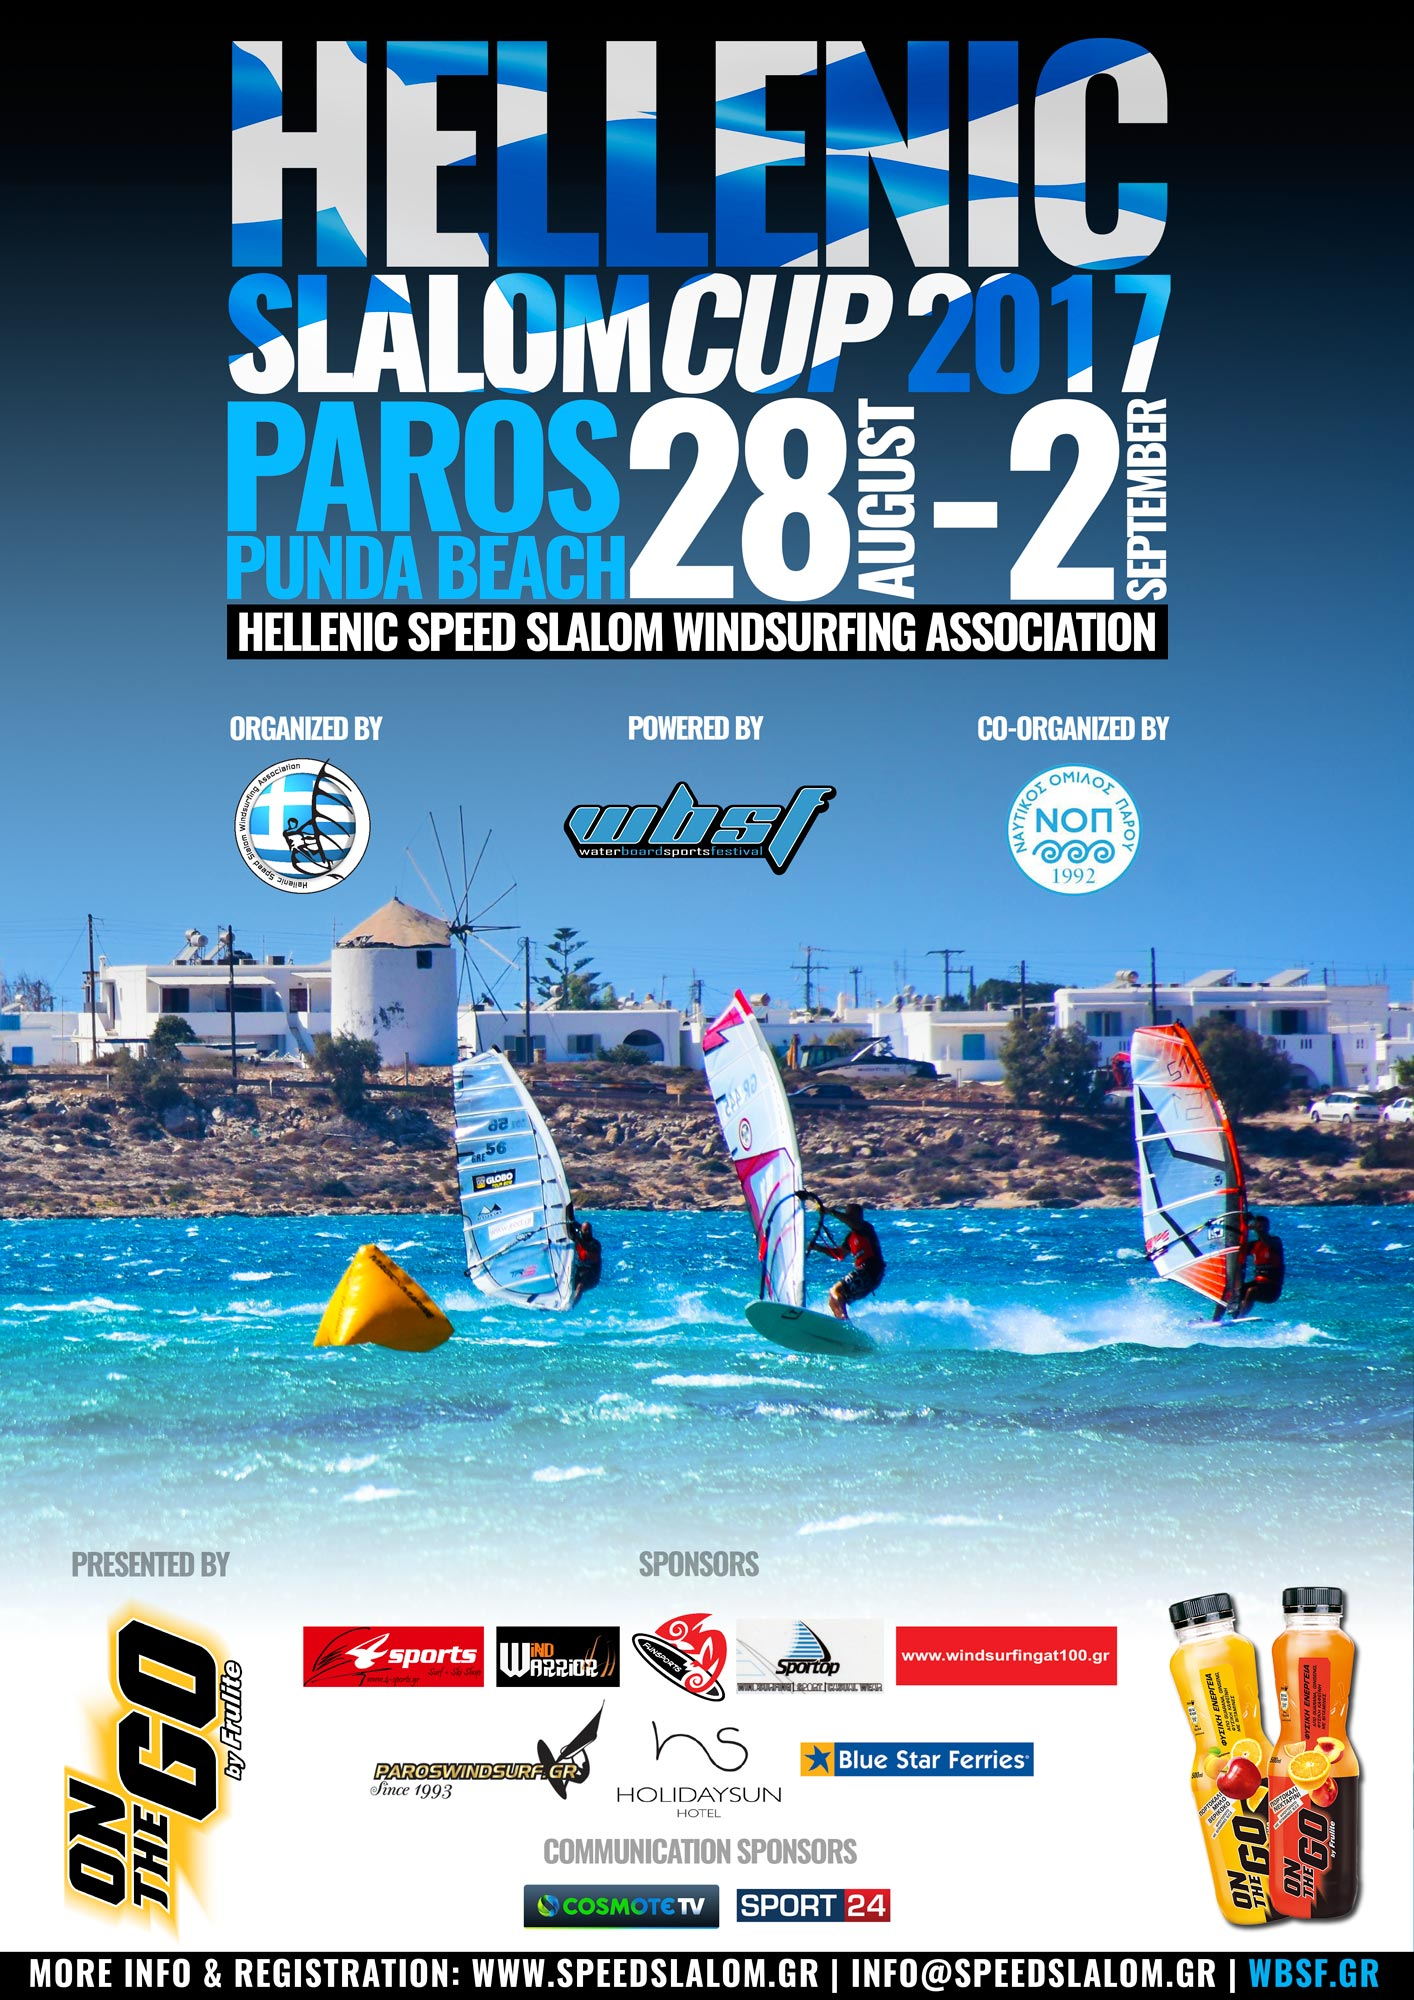 HELLENIC SLALOM CUP